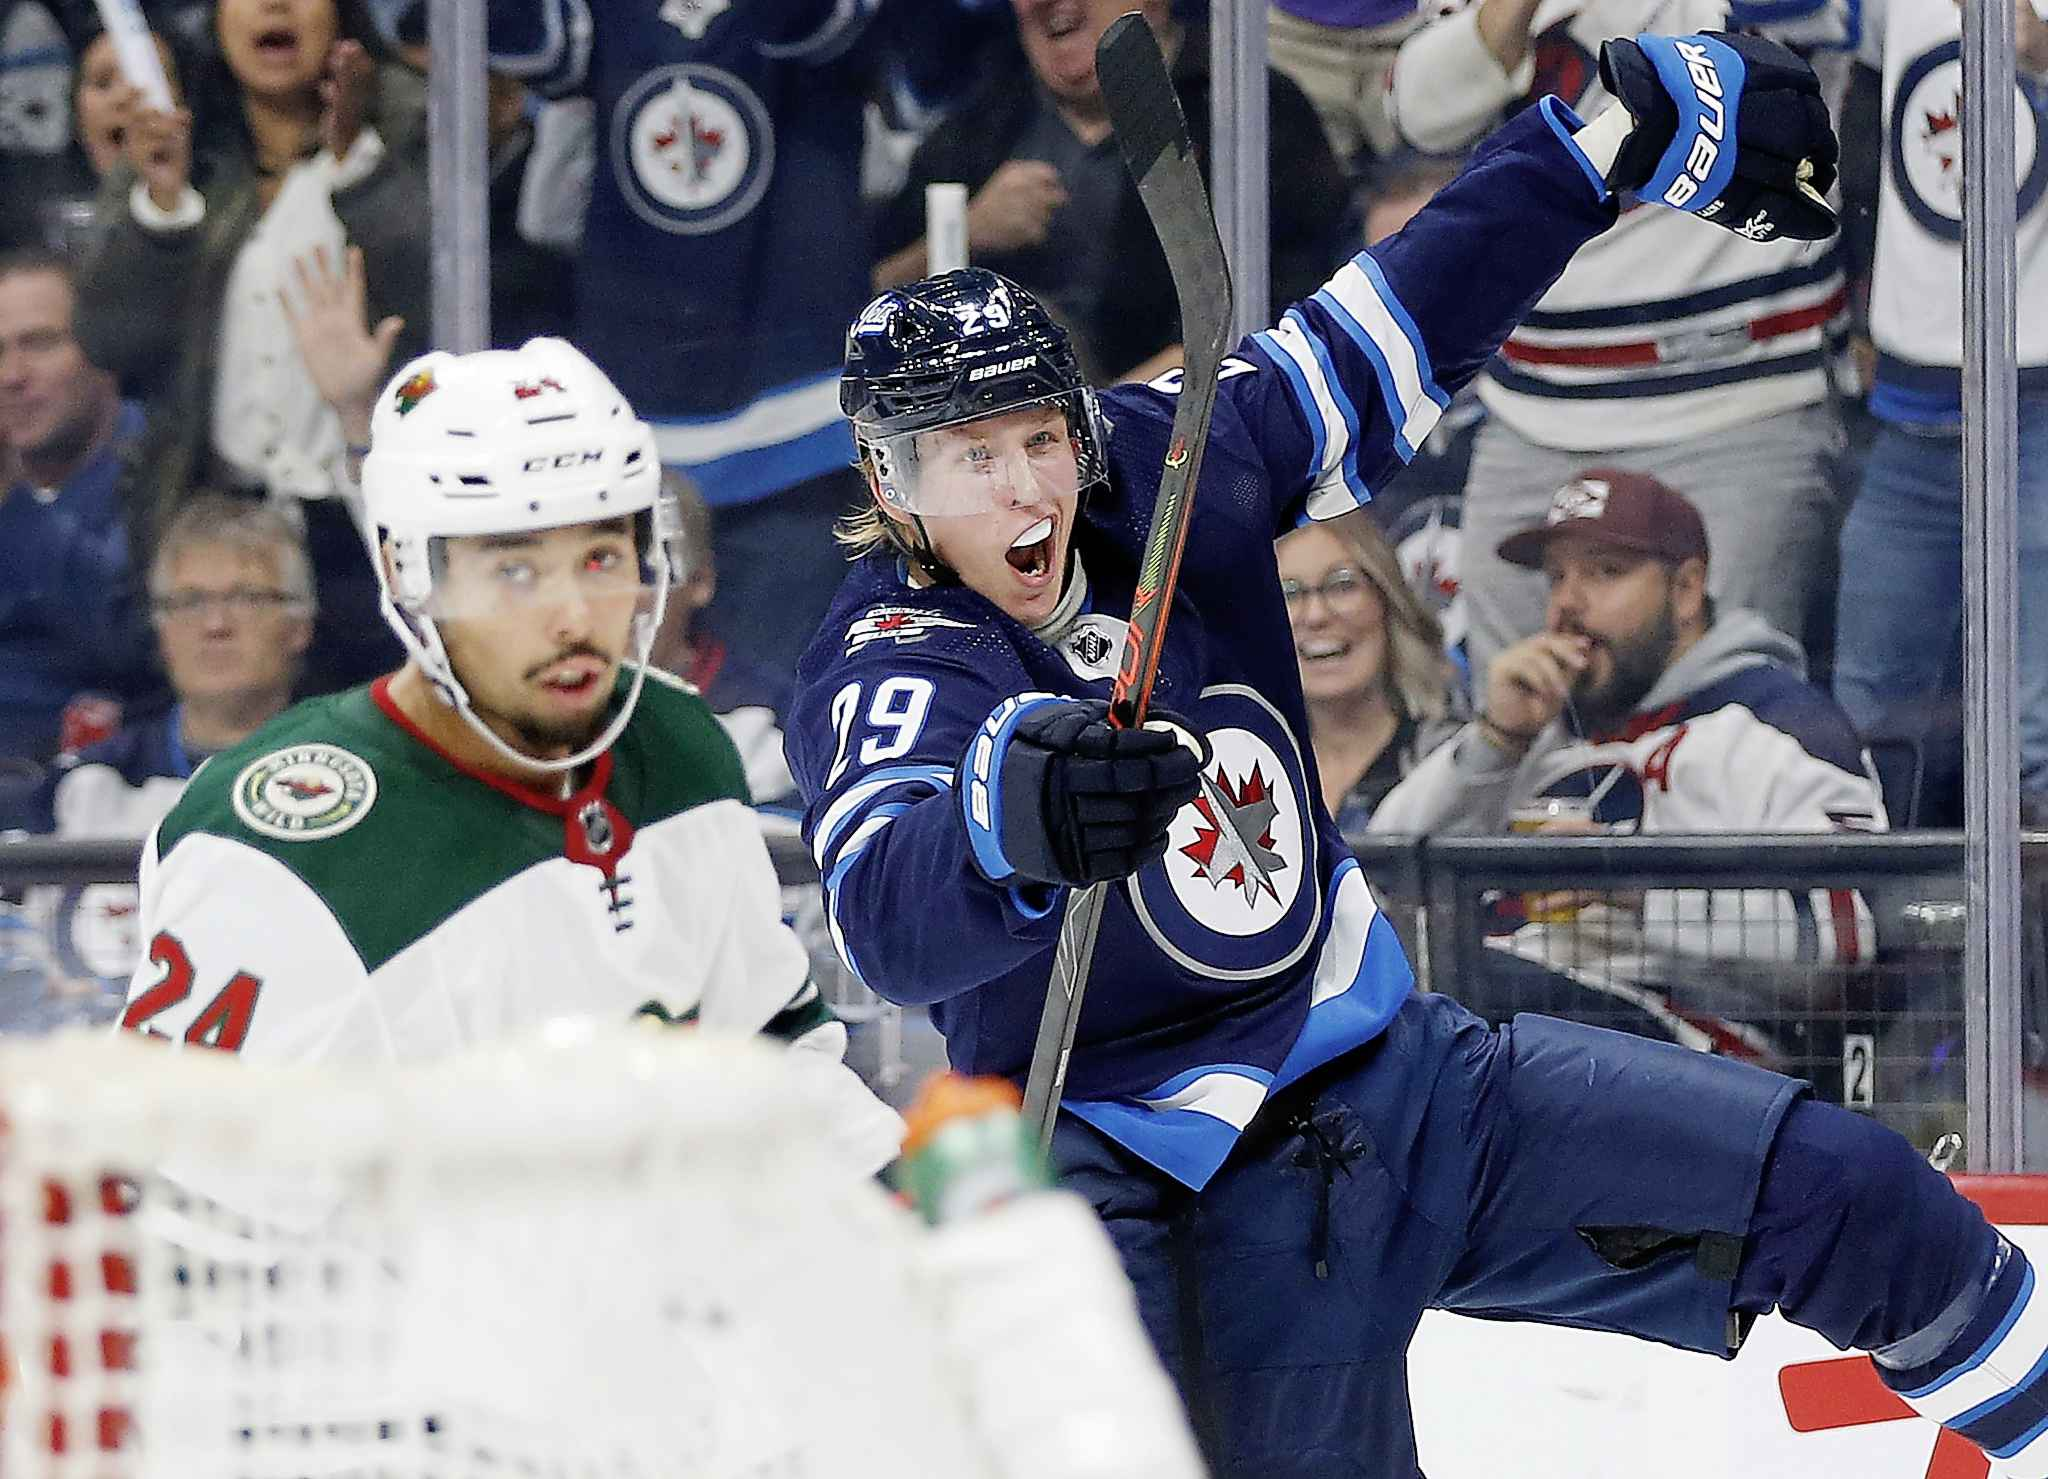 Patrik Laine has three goals and seven assists in five games this season, compared to two goals and one assist after five games last year. (John Woods / The Canadian Press)